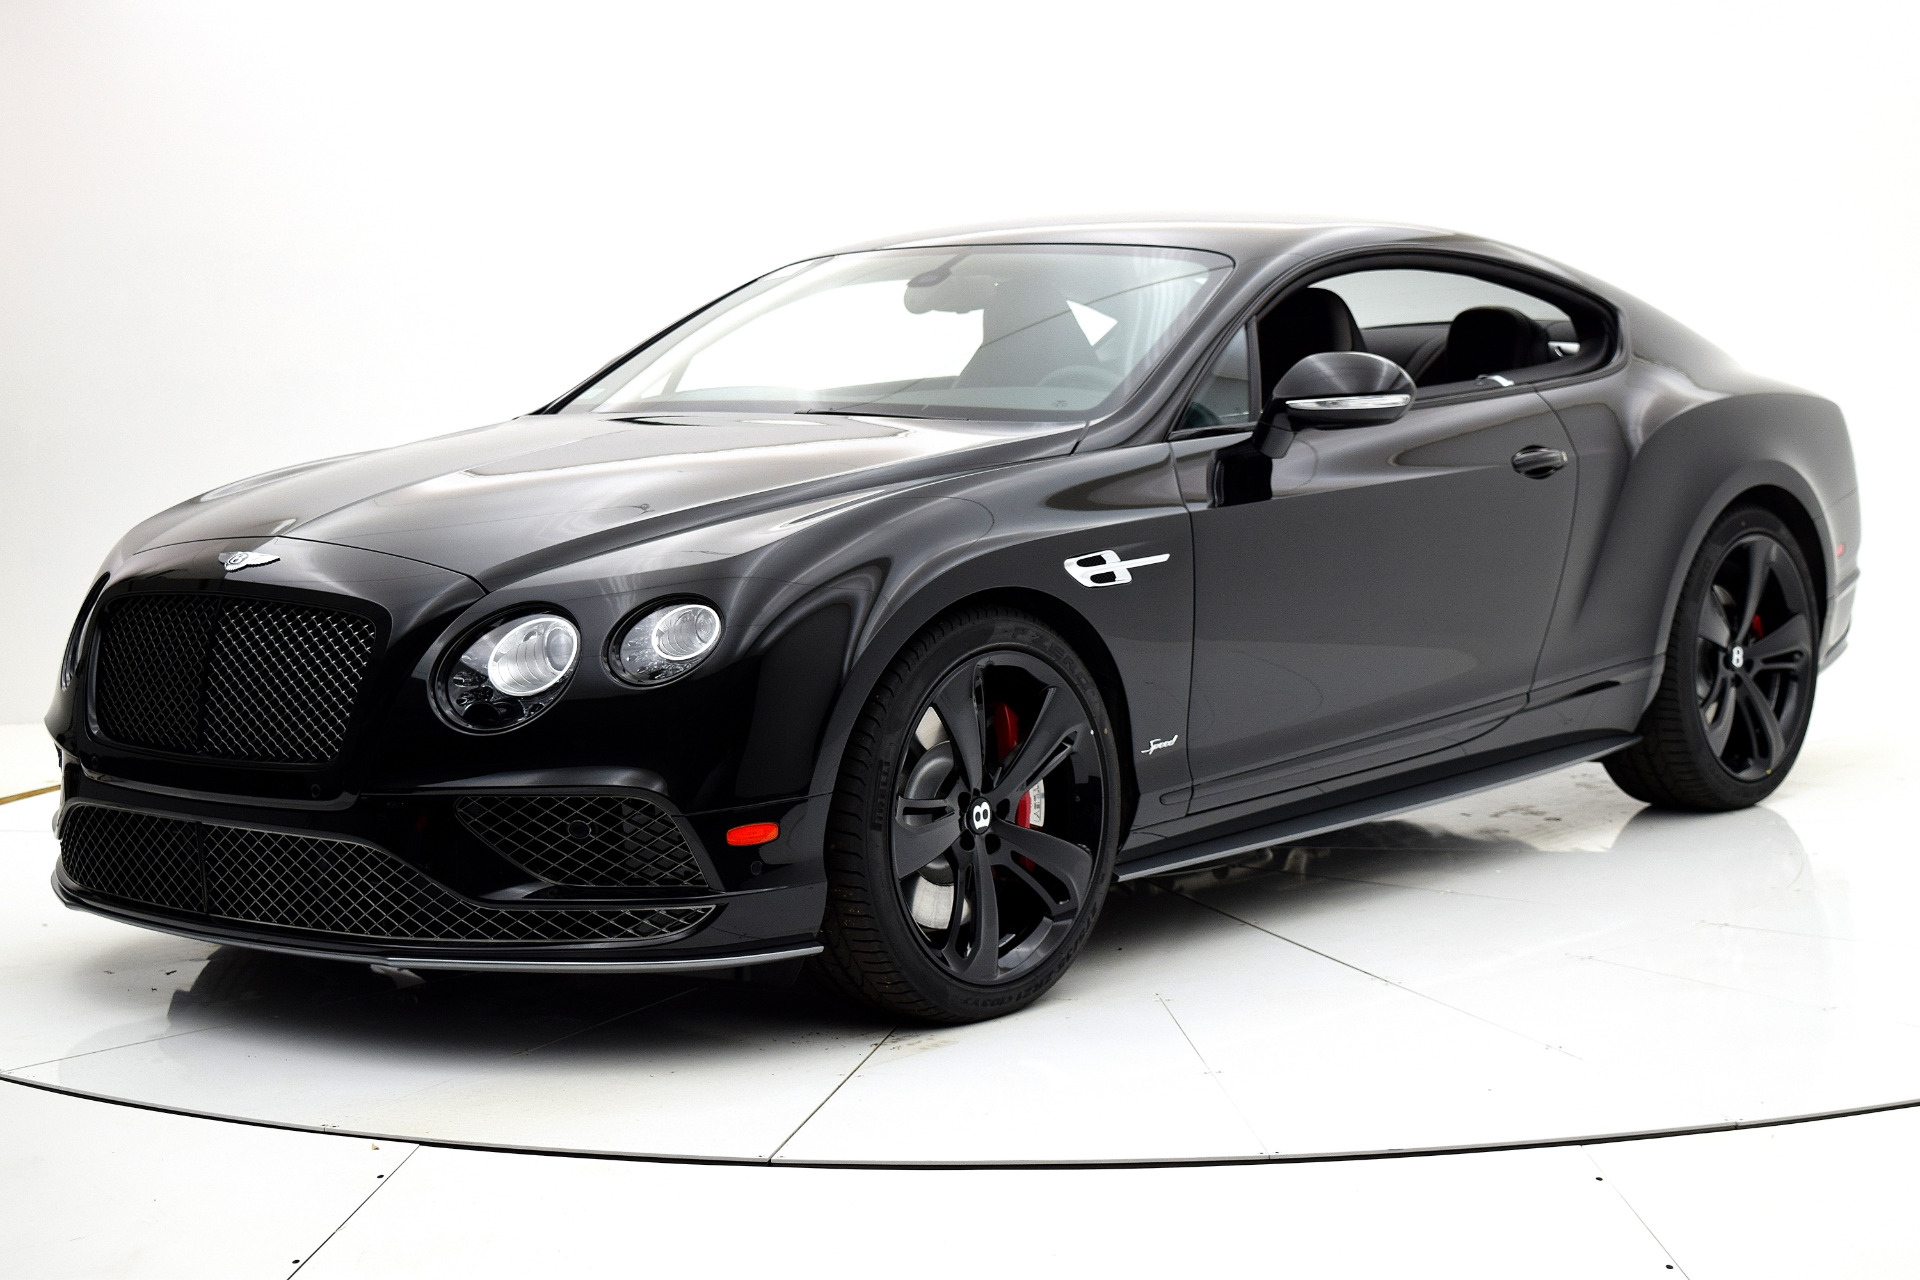 new 2017 bentley continental gt speed black edition for sale 260 690 fc kerbeck bentley. Black Bedroom Furniture Sets. Home Design Ideas